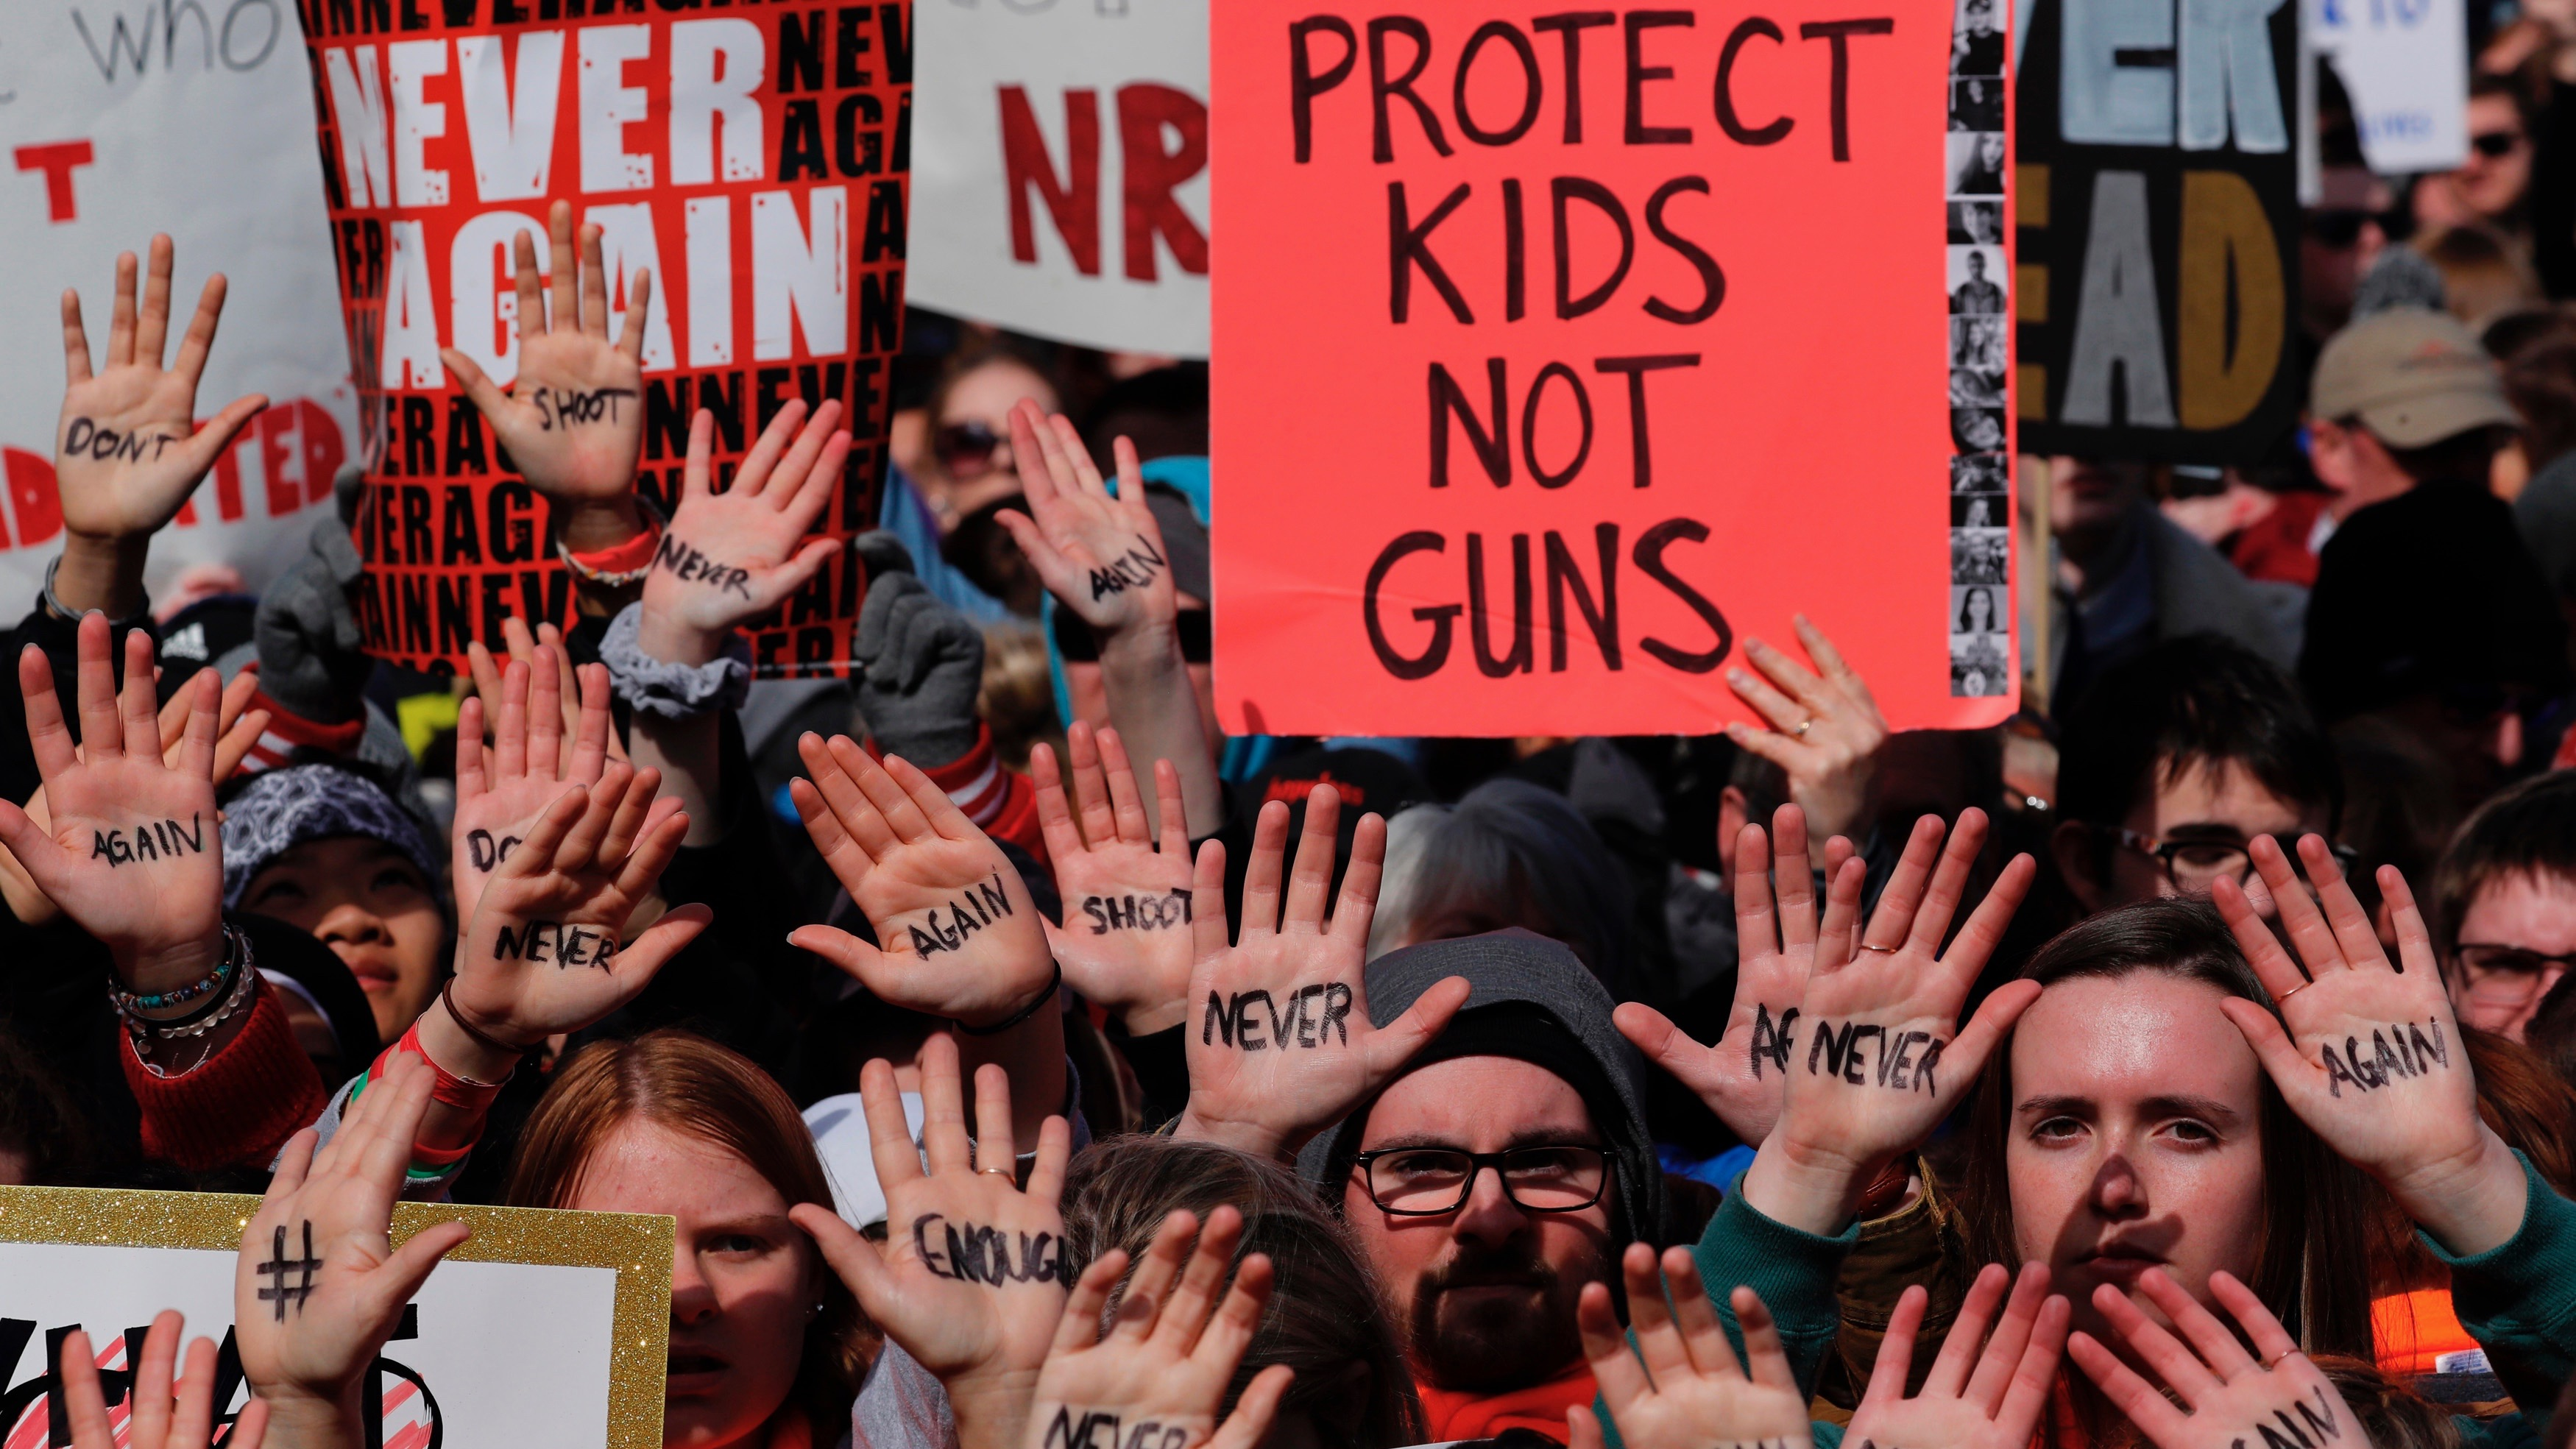 """March for Our Lives"" event demanding gun control in March 2018."